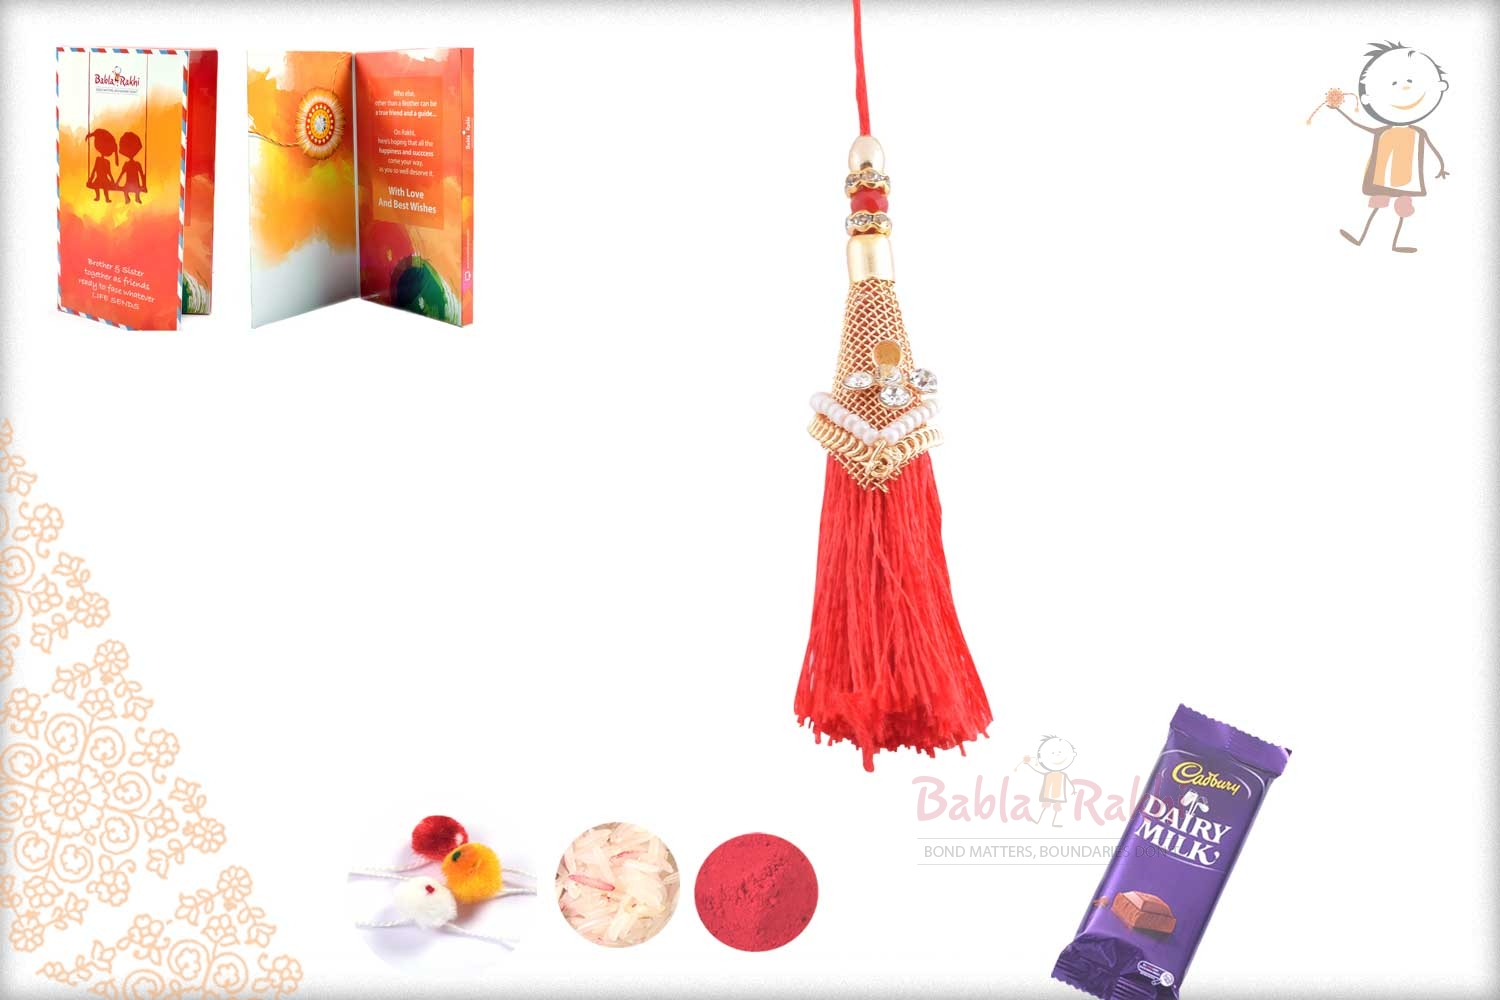 Elegant Red Thread with Golden Net Bhabhi Rakhi 1